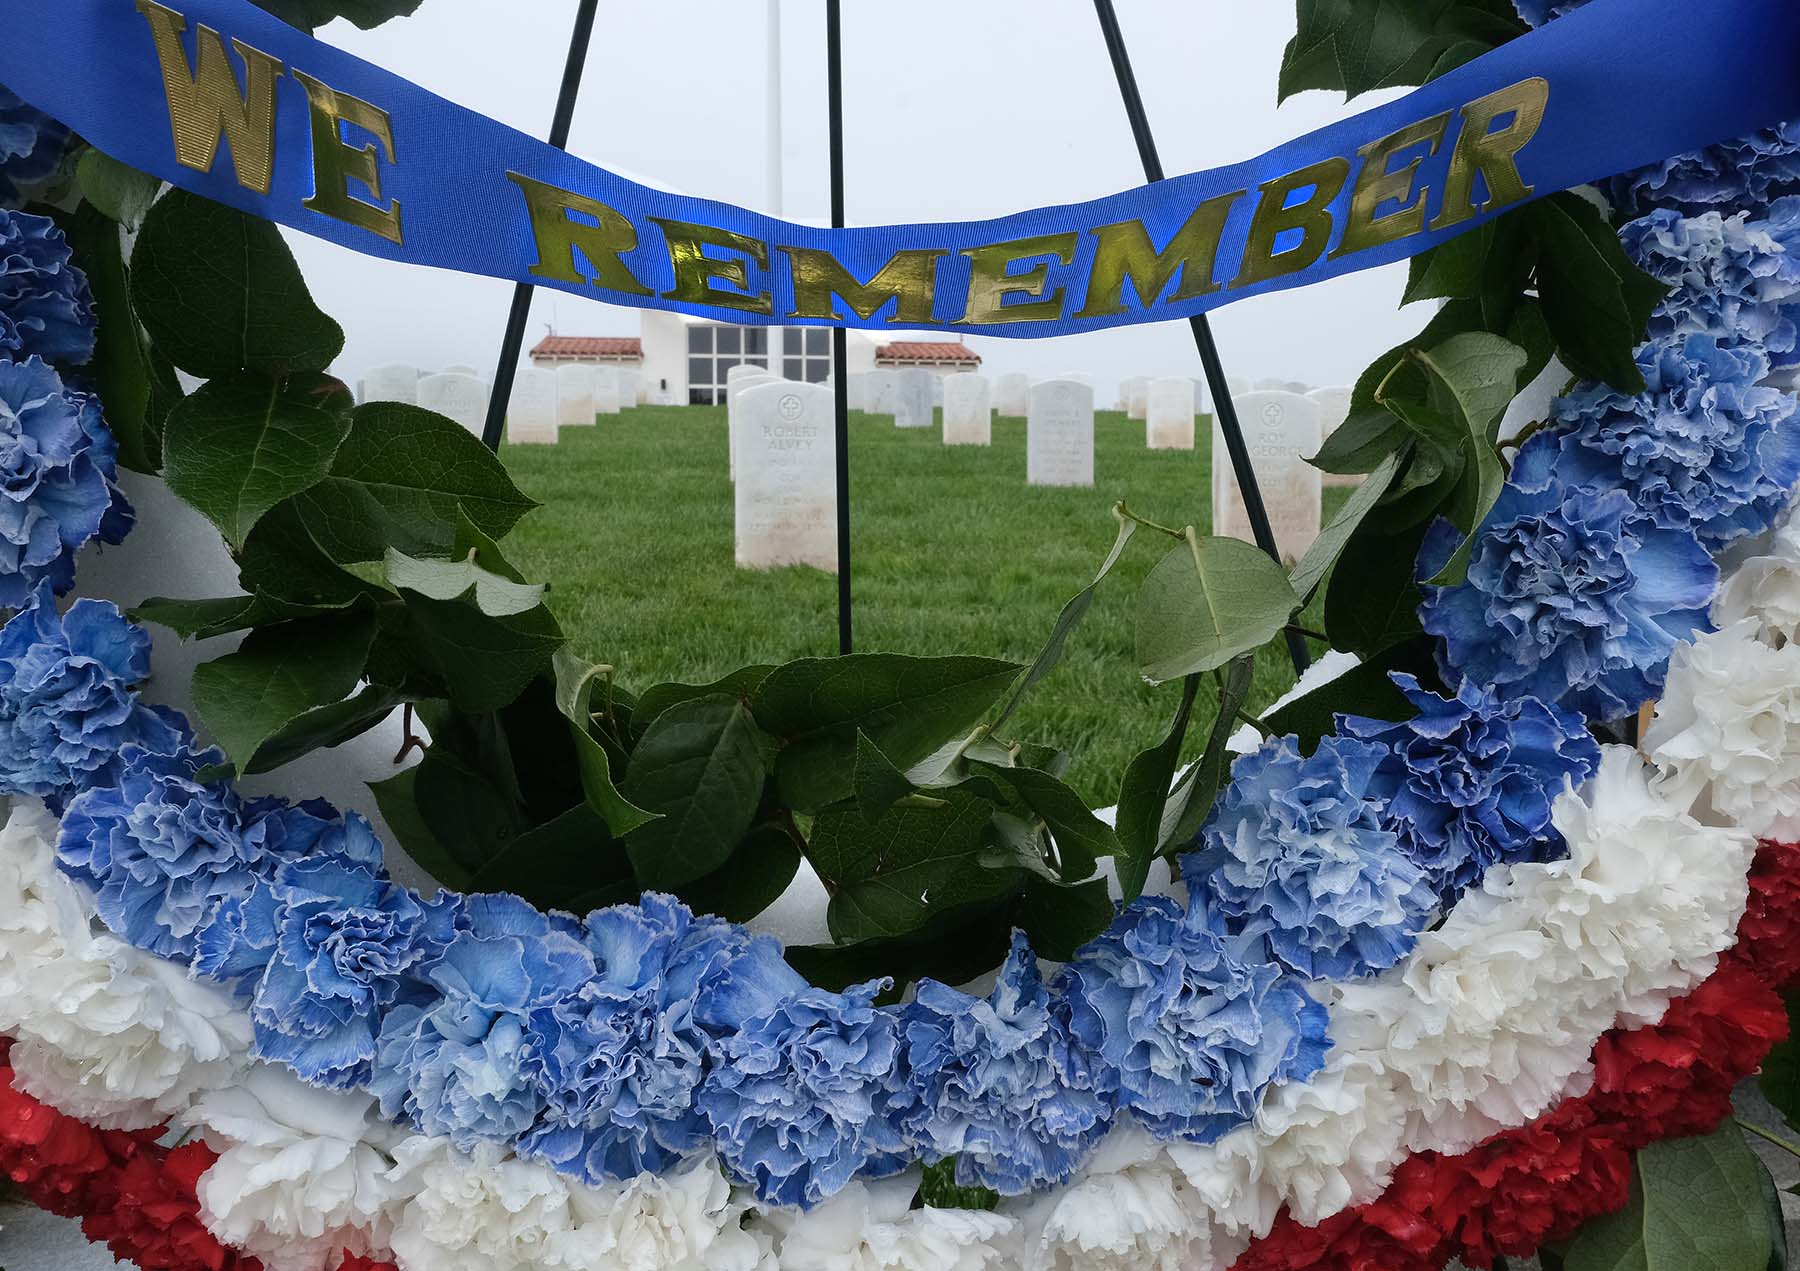 Wreaths were placed at Fort Rosecrans National Cemetery to honor those who lost their lives while serving in the military.